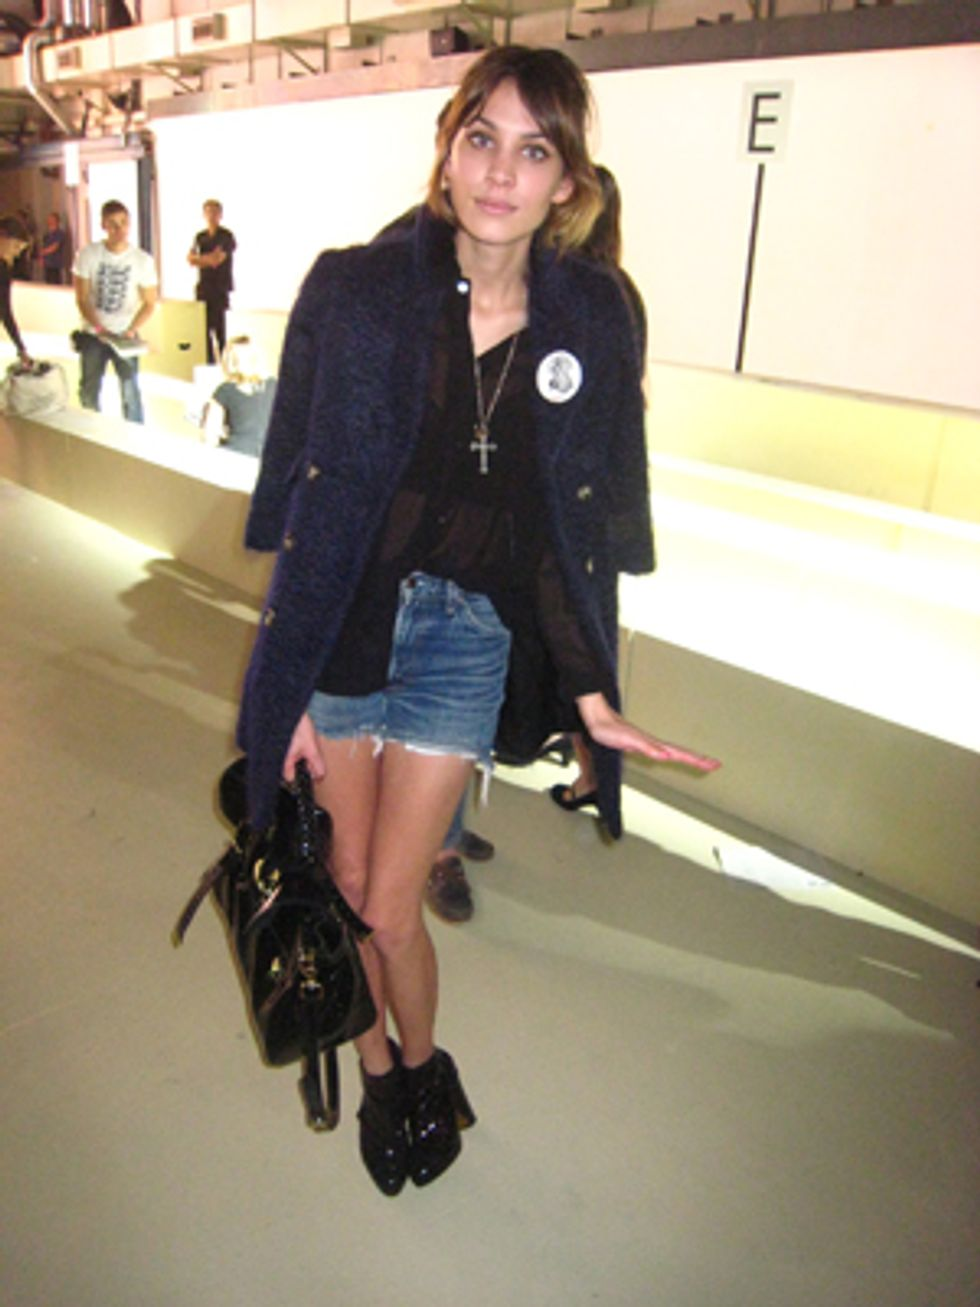 London Fashion Week Report: A Quick Chit-Chat With Alexa Chung